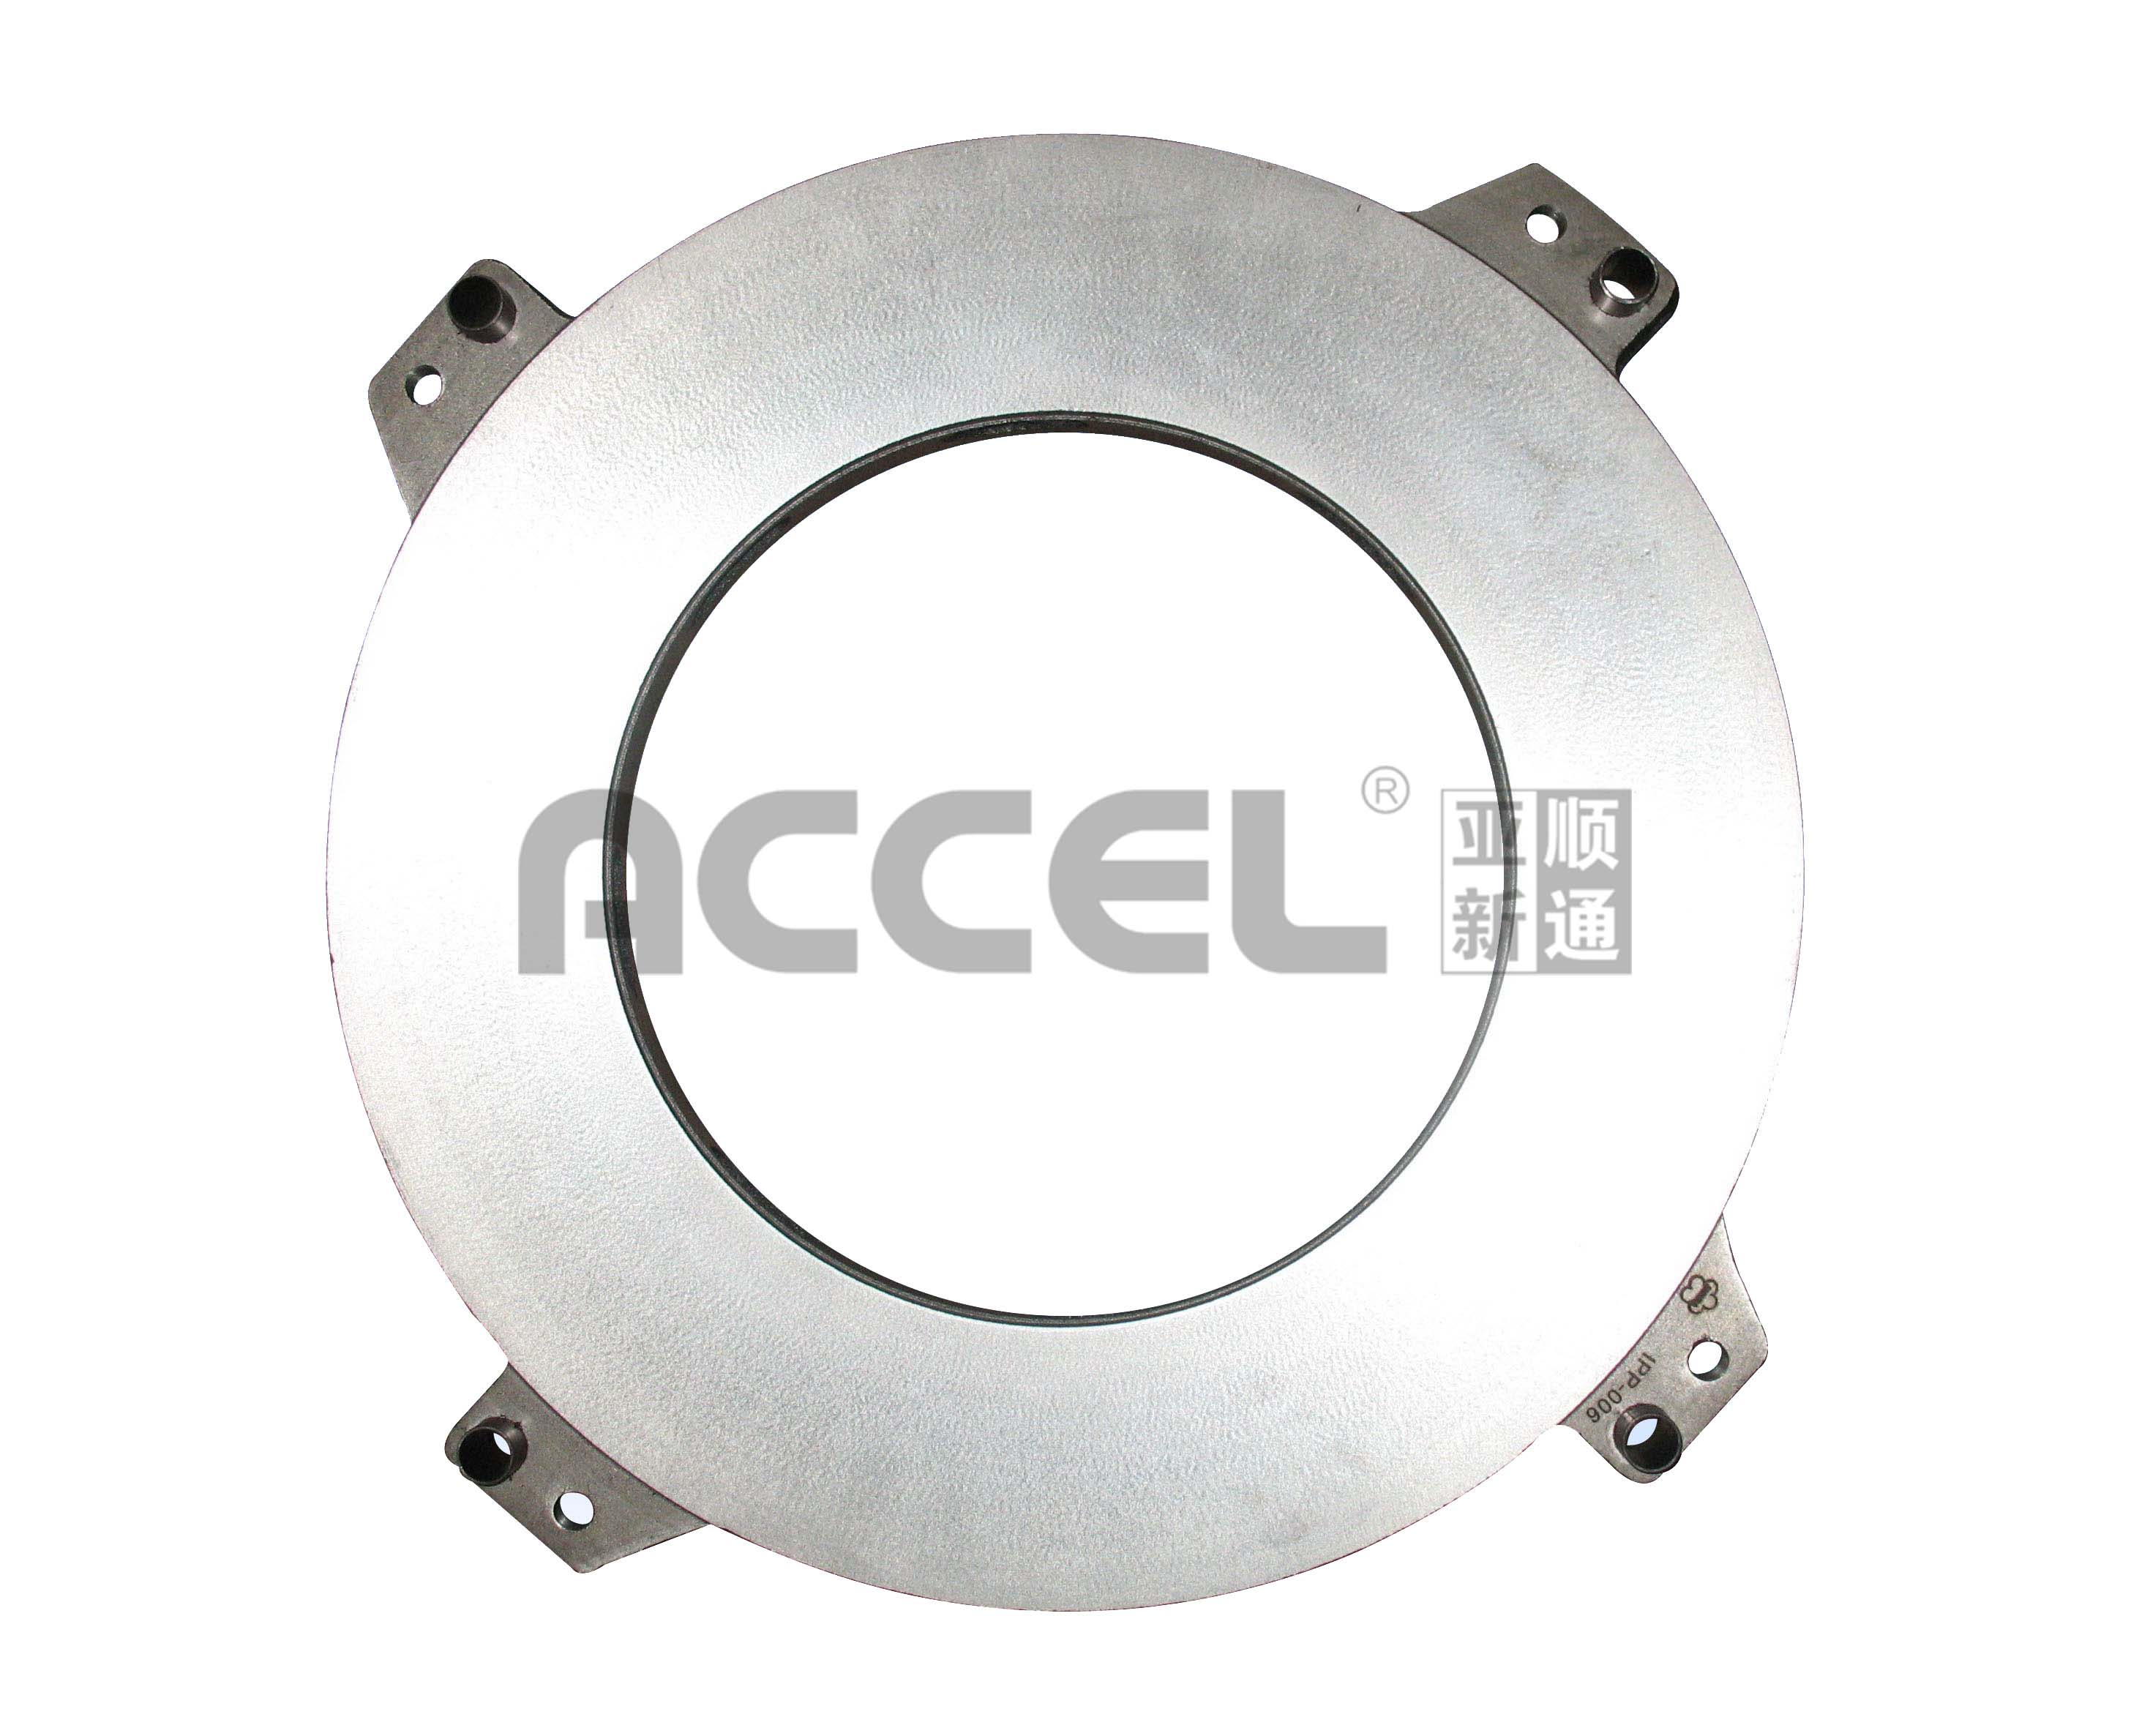 Clutch Cover/OE:NULL/404*247*29/IPP-006/LS/LZ005